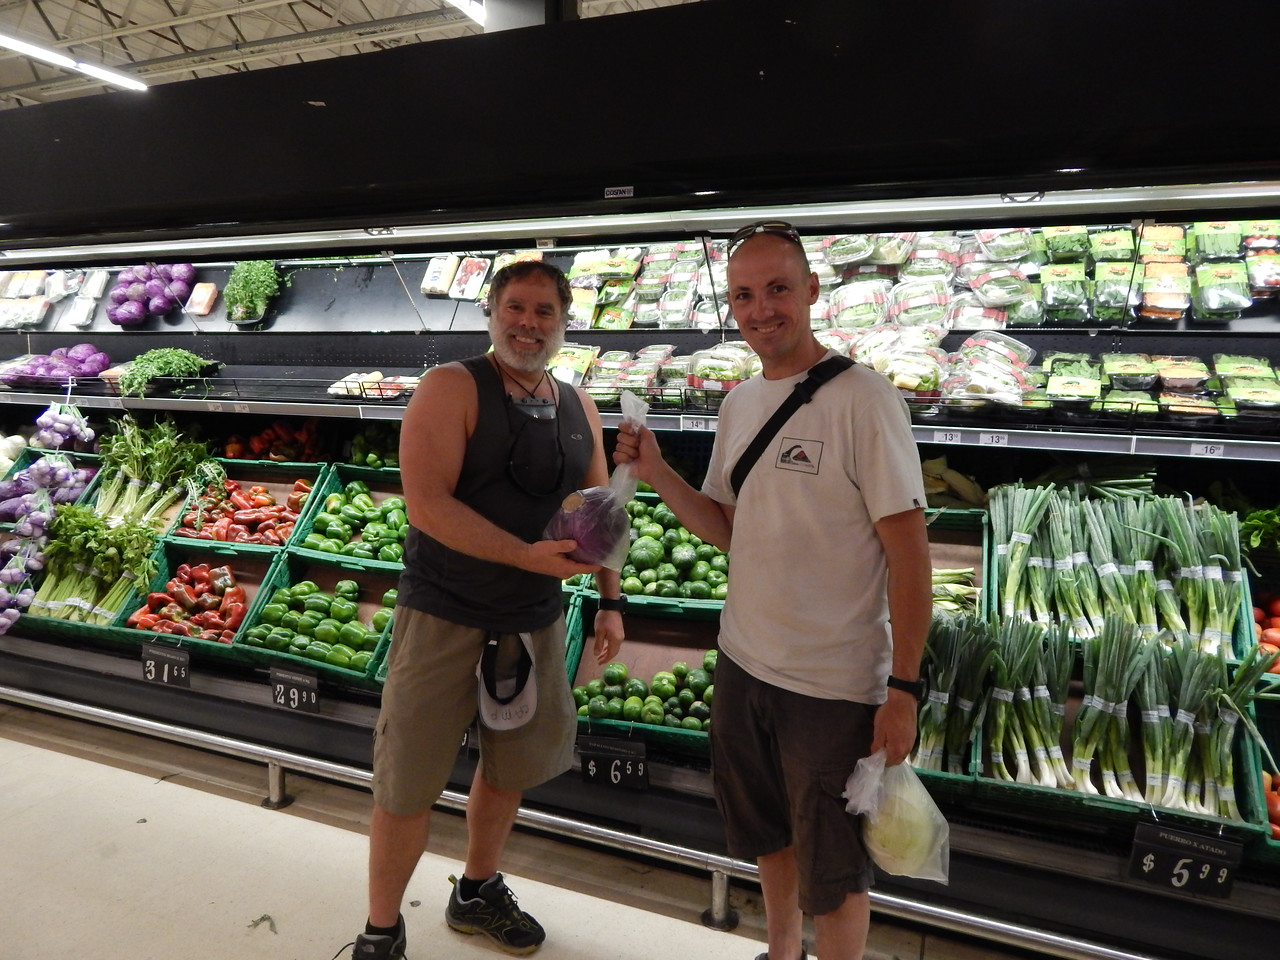 Shopping for mountain food